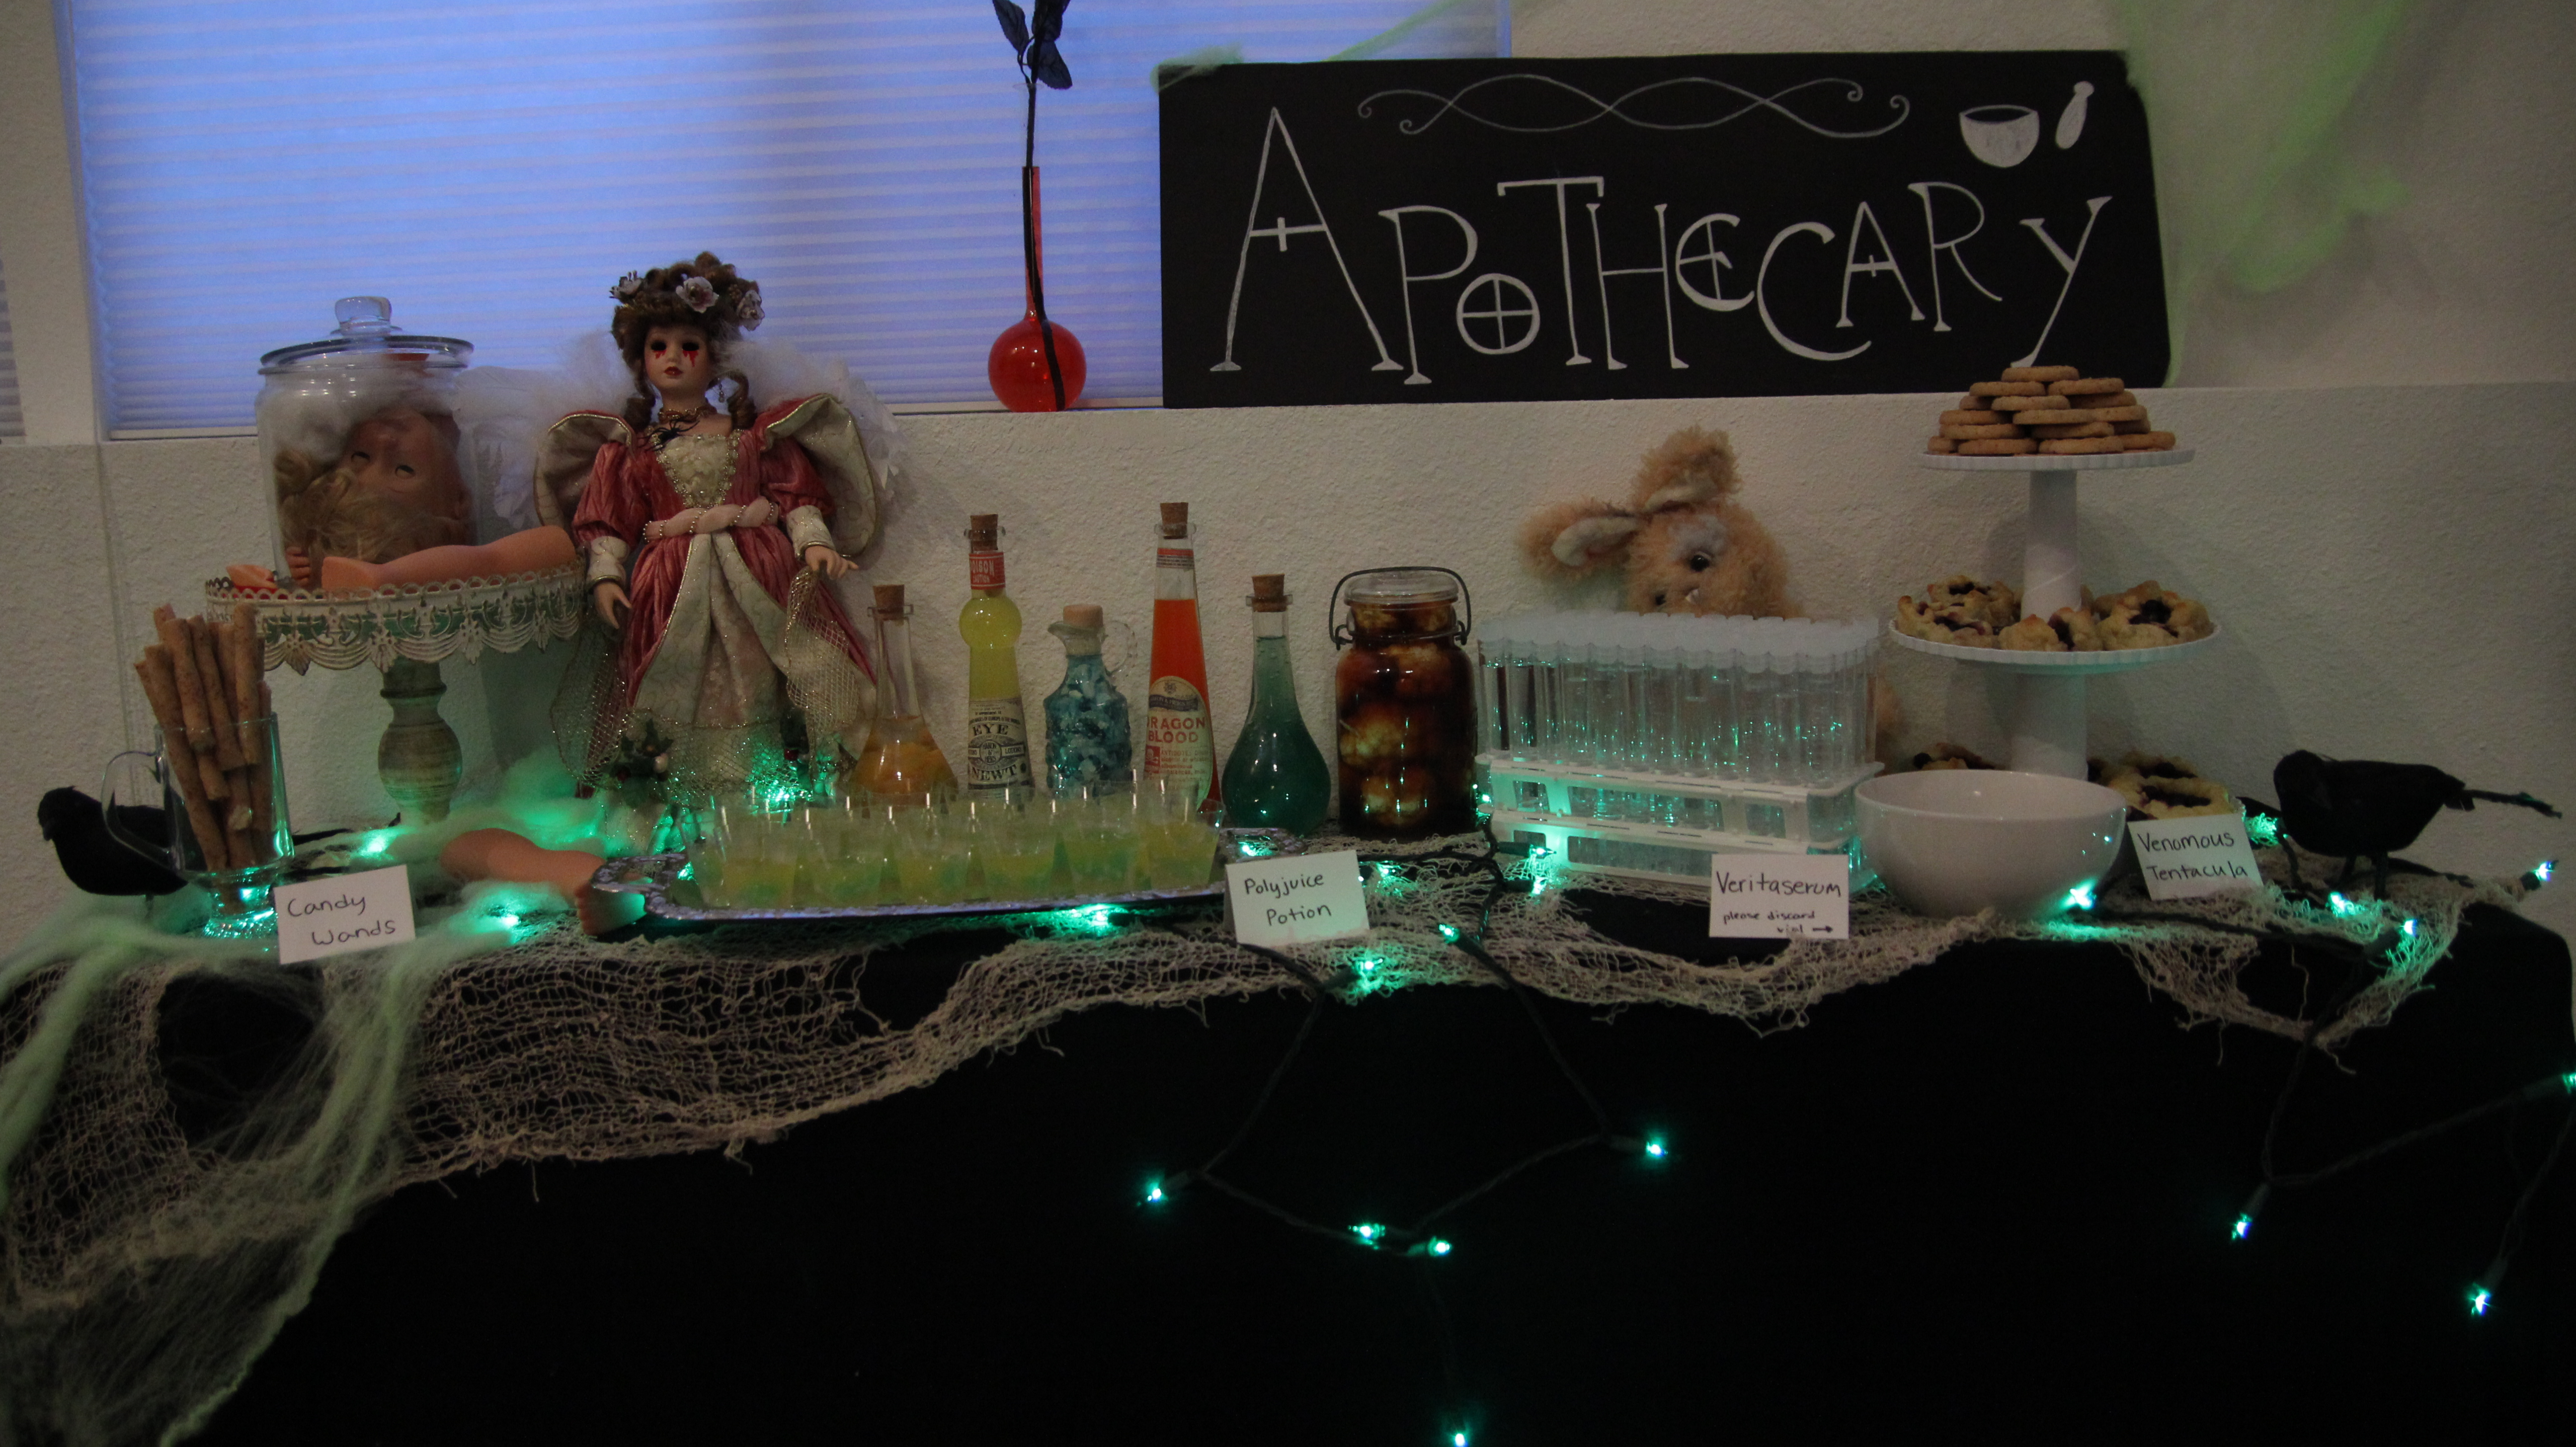 Ultimate harry potter party apothecary hello kristina for Decoration harry potter